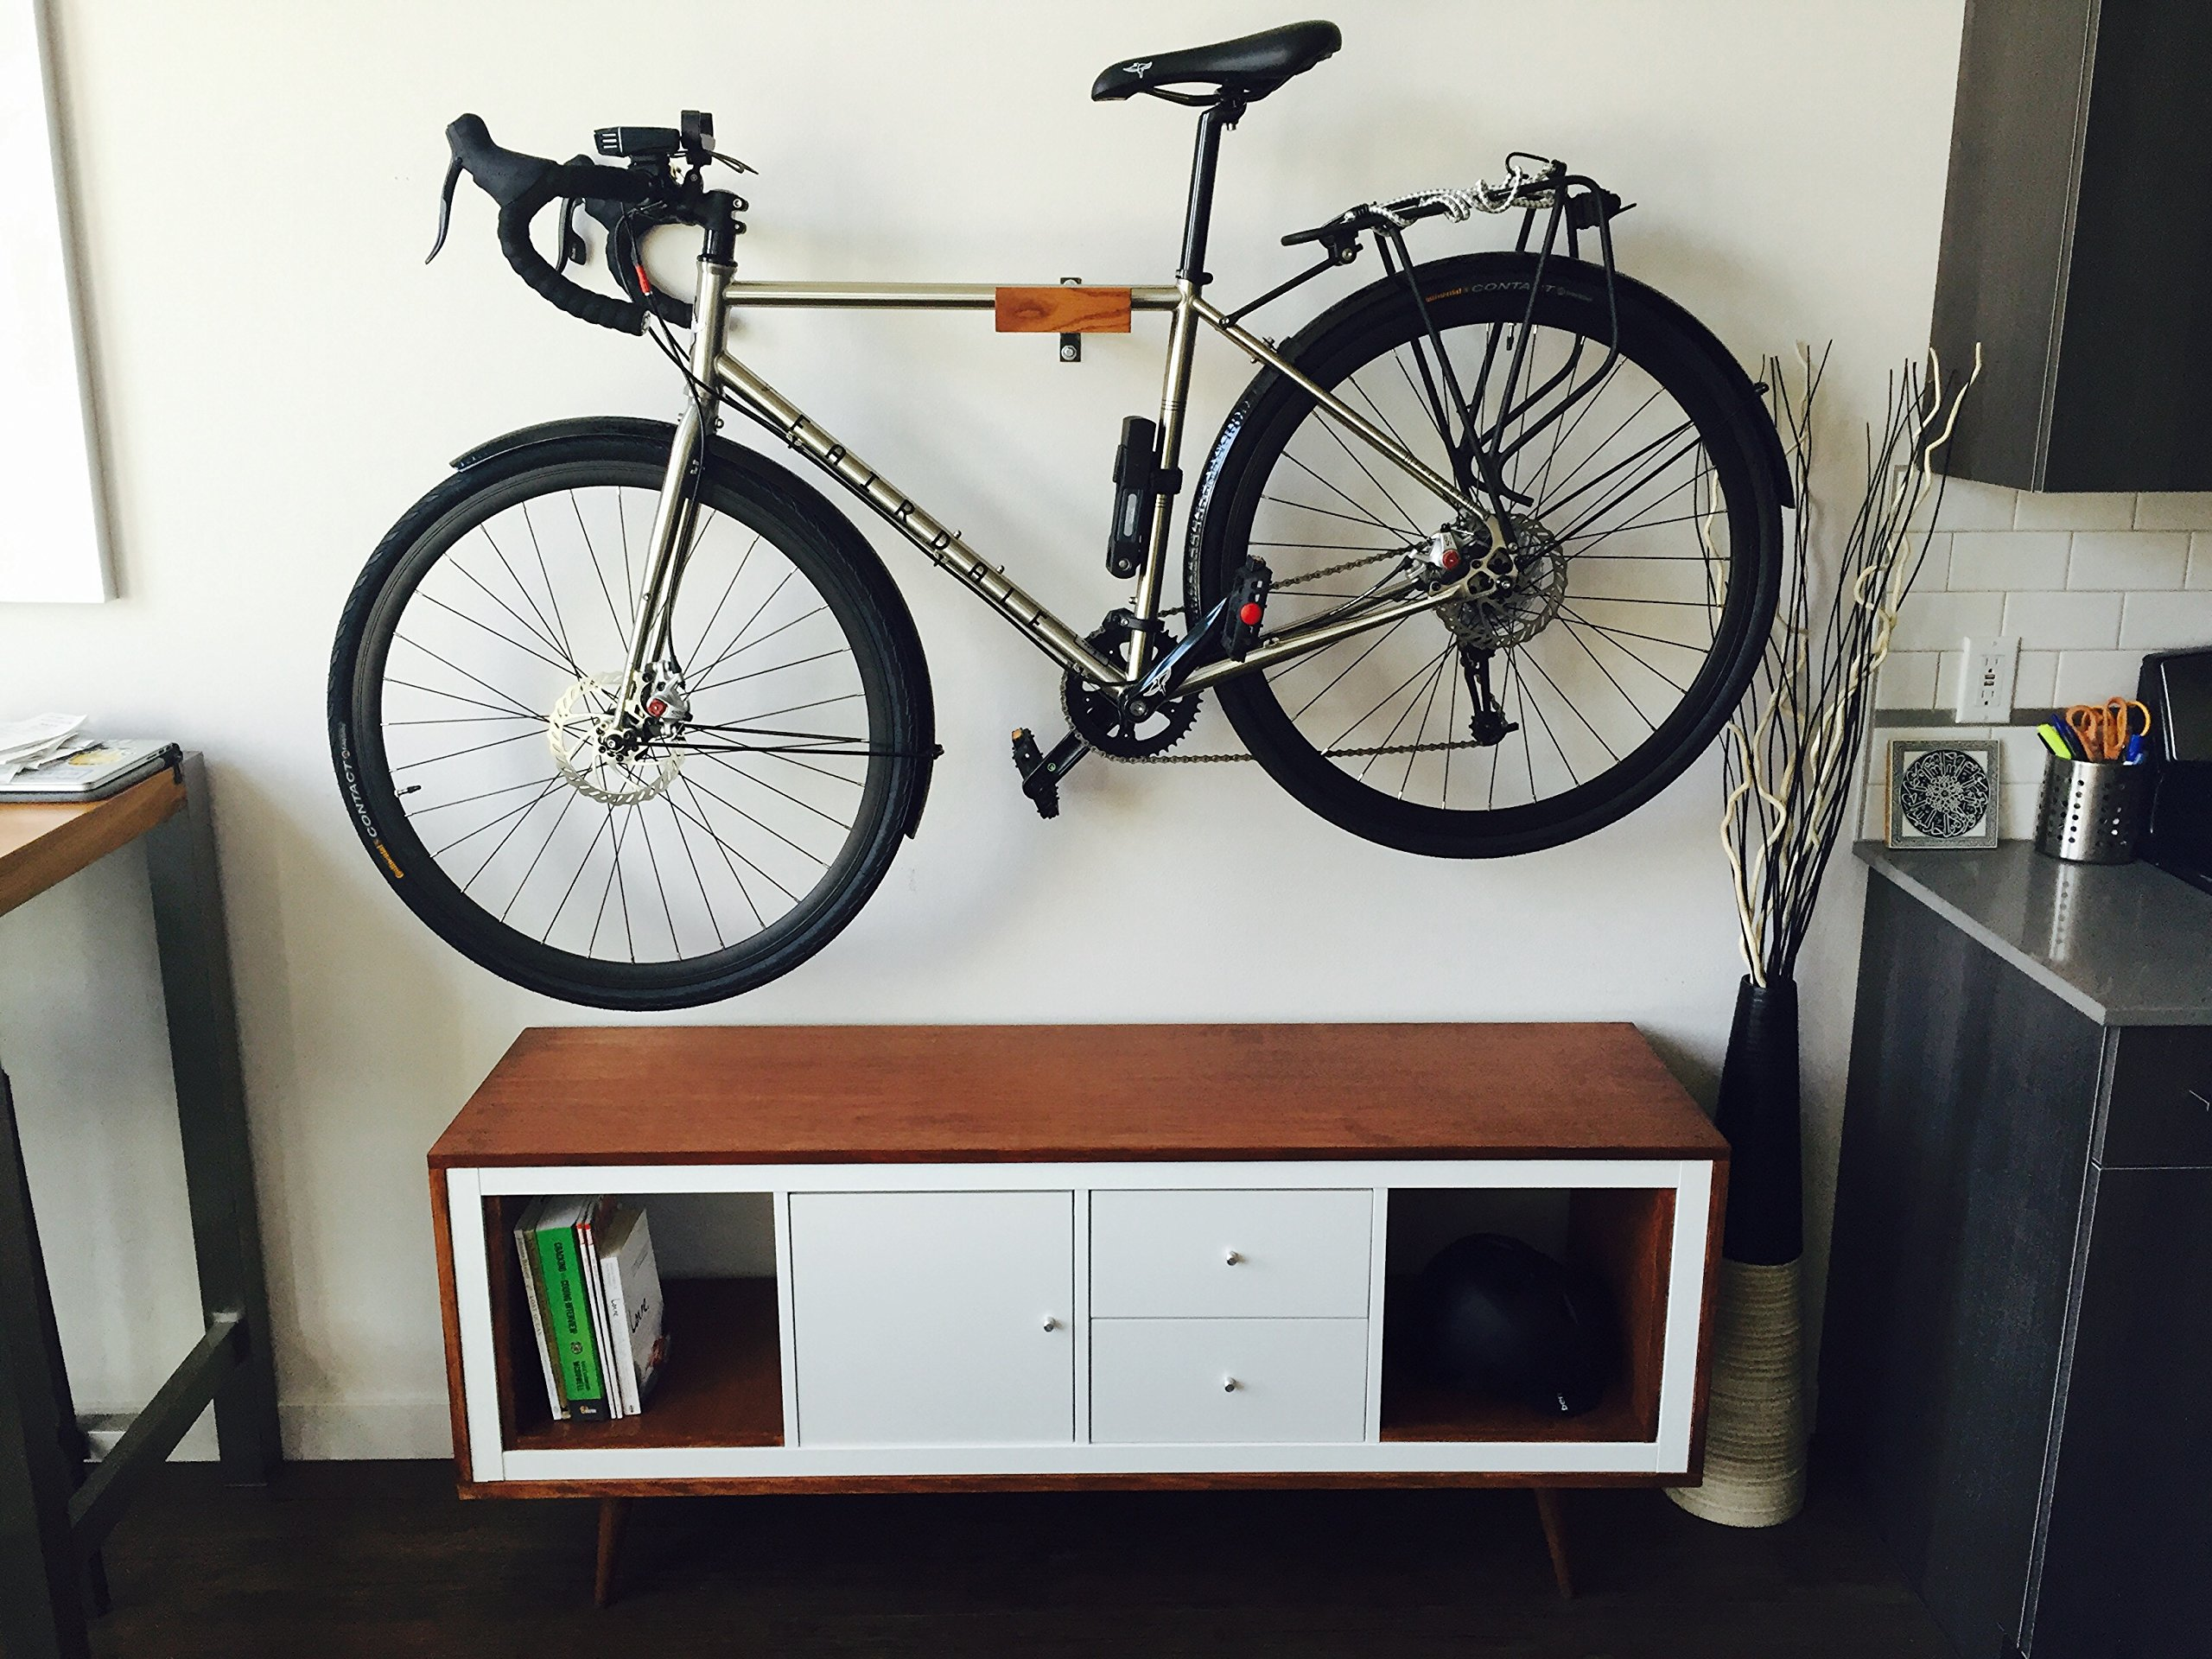 Ash and Steel Indoor Bicycle Wall Mount Hanger Rack by Well Hung Bicycles (Image #5)